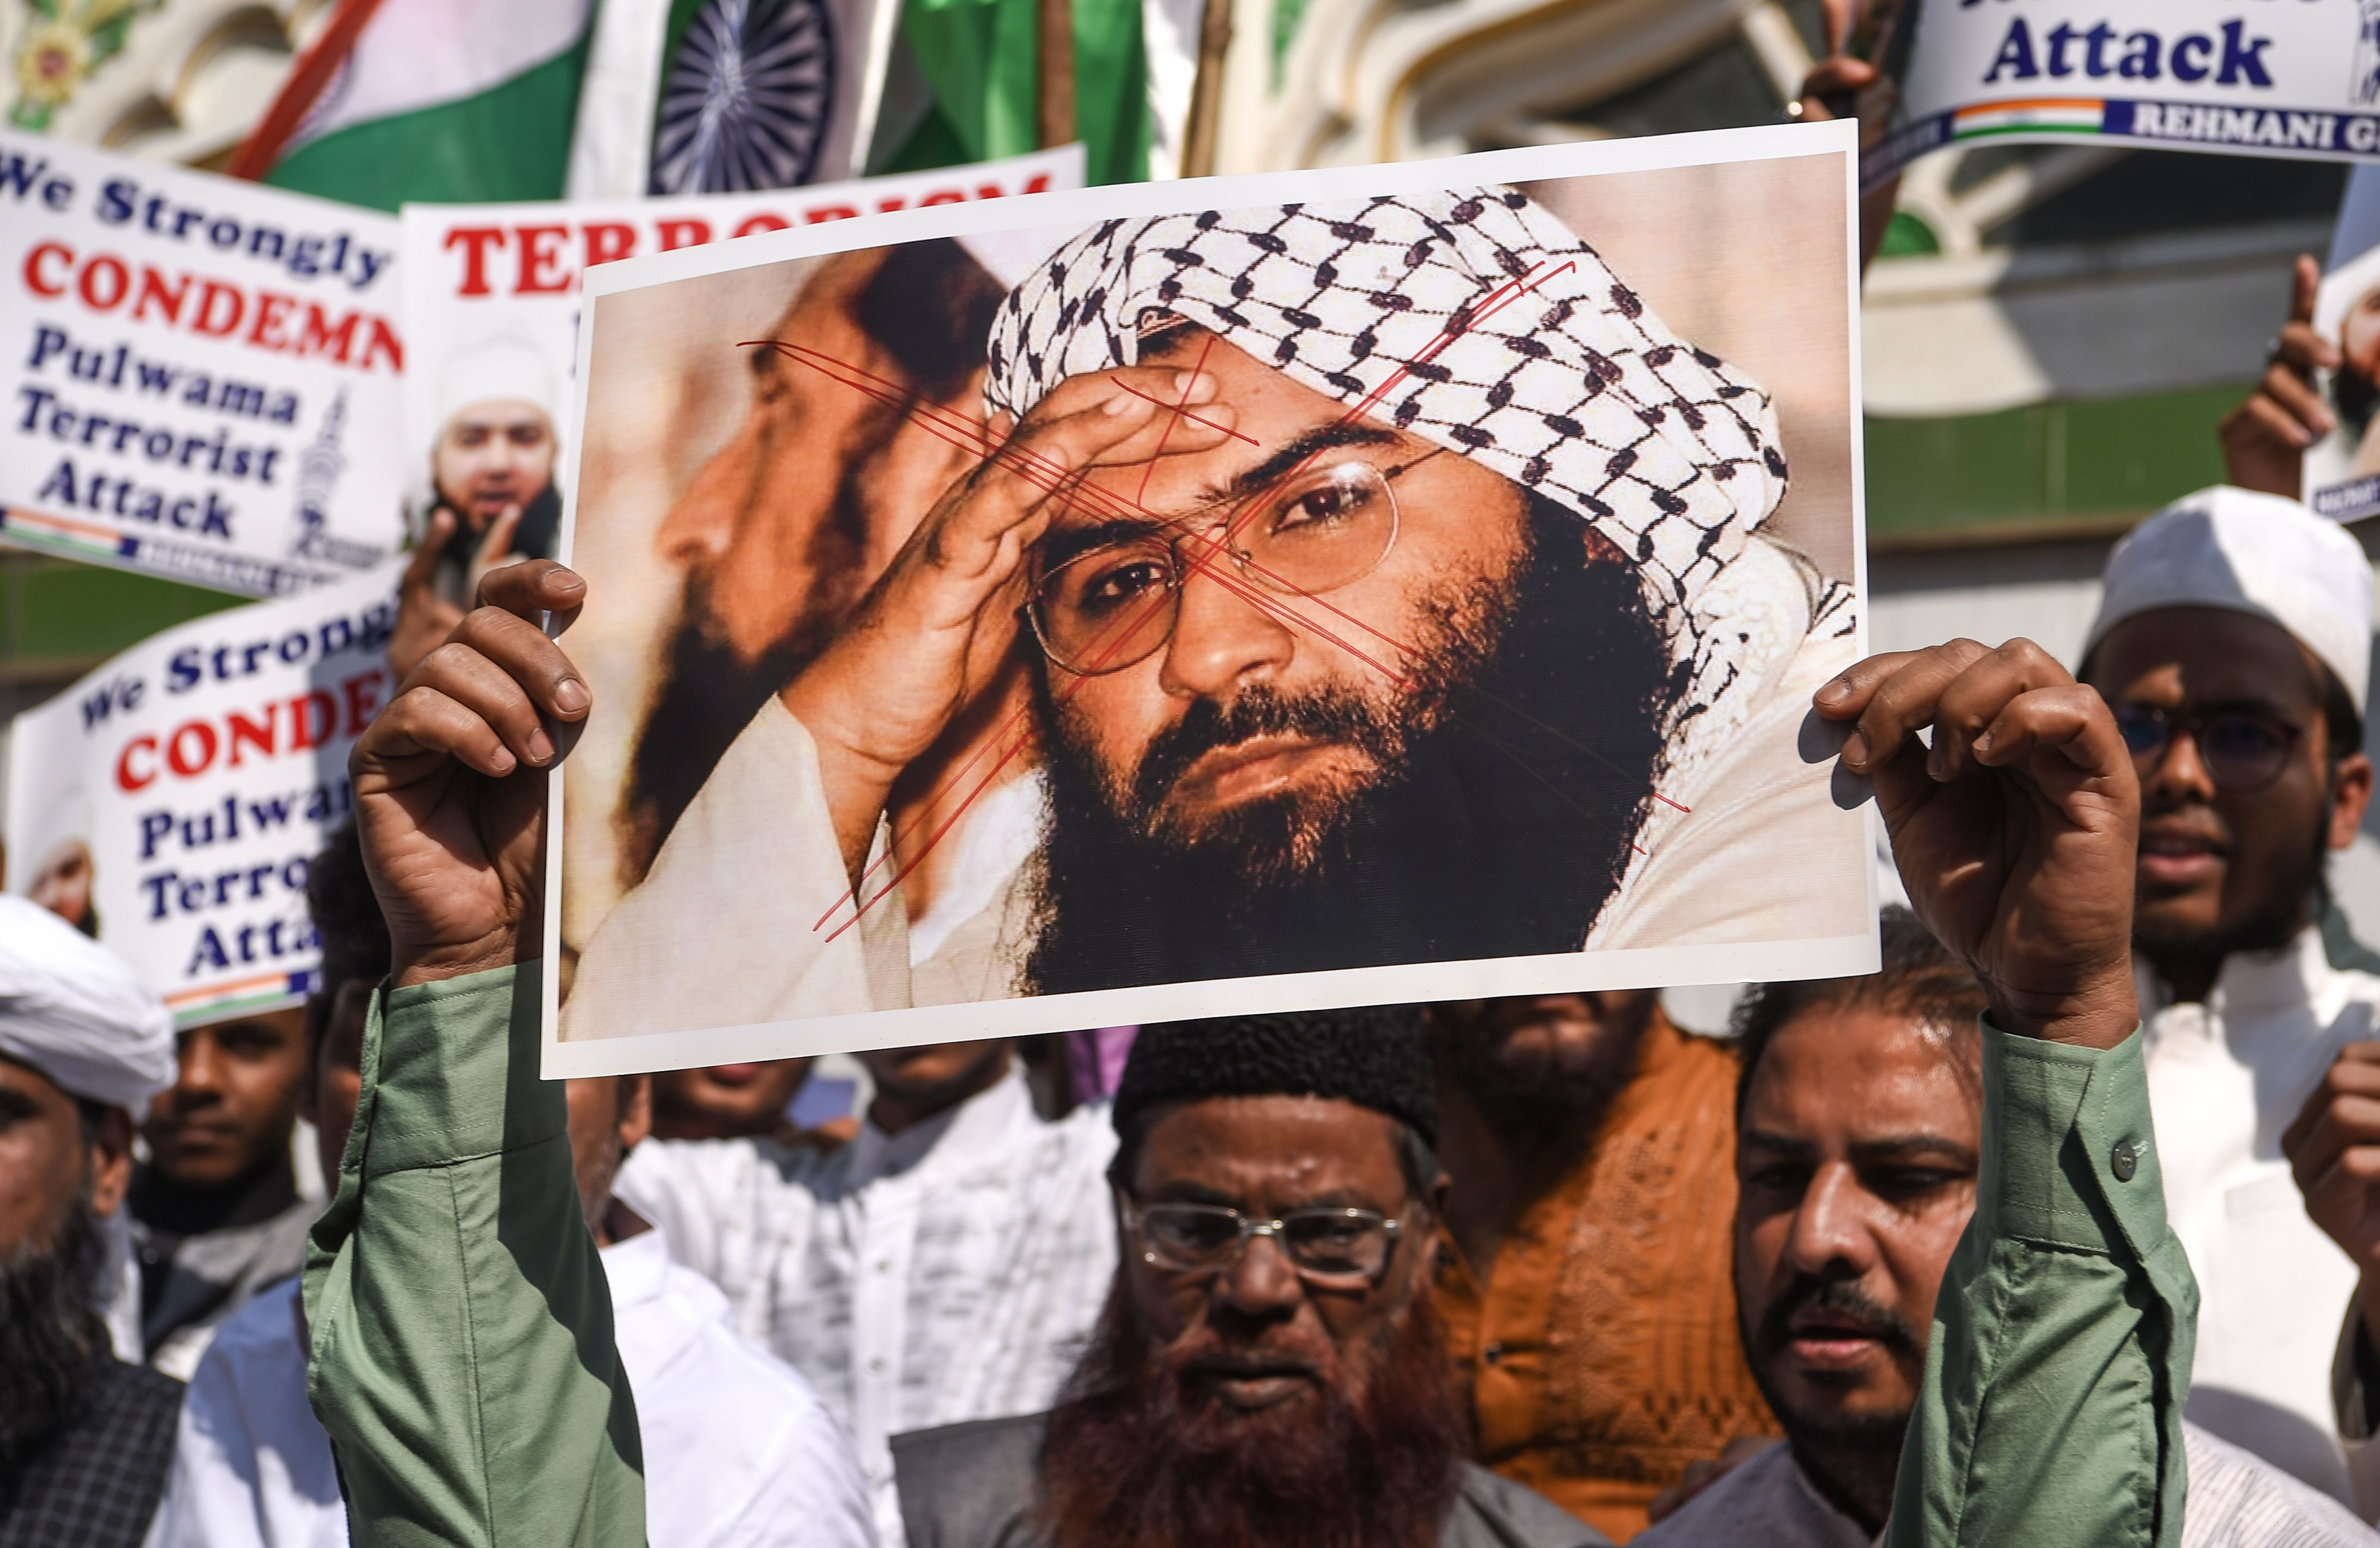 Indian Muslims hold a scratched photo of Jaish-e-Mohammad group chief, Maulana Masood Azhar, during a protest in Mumbai on February 15, 2019, the day after an attack on a paramilitary Central Reserve Police Force (CRPF) convoy in Kashmir.